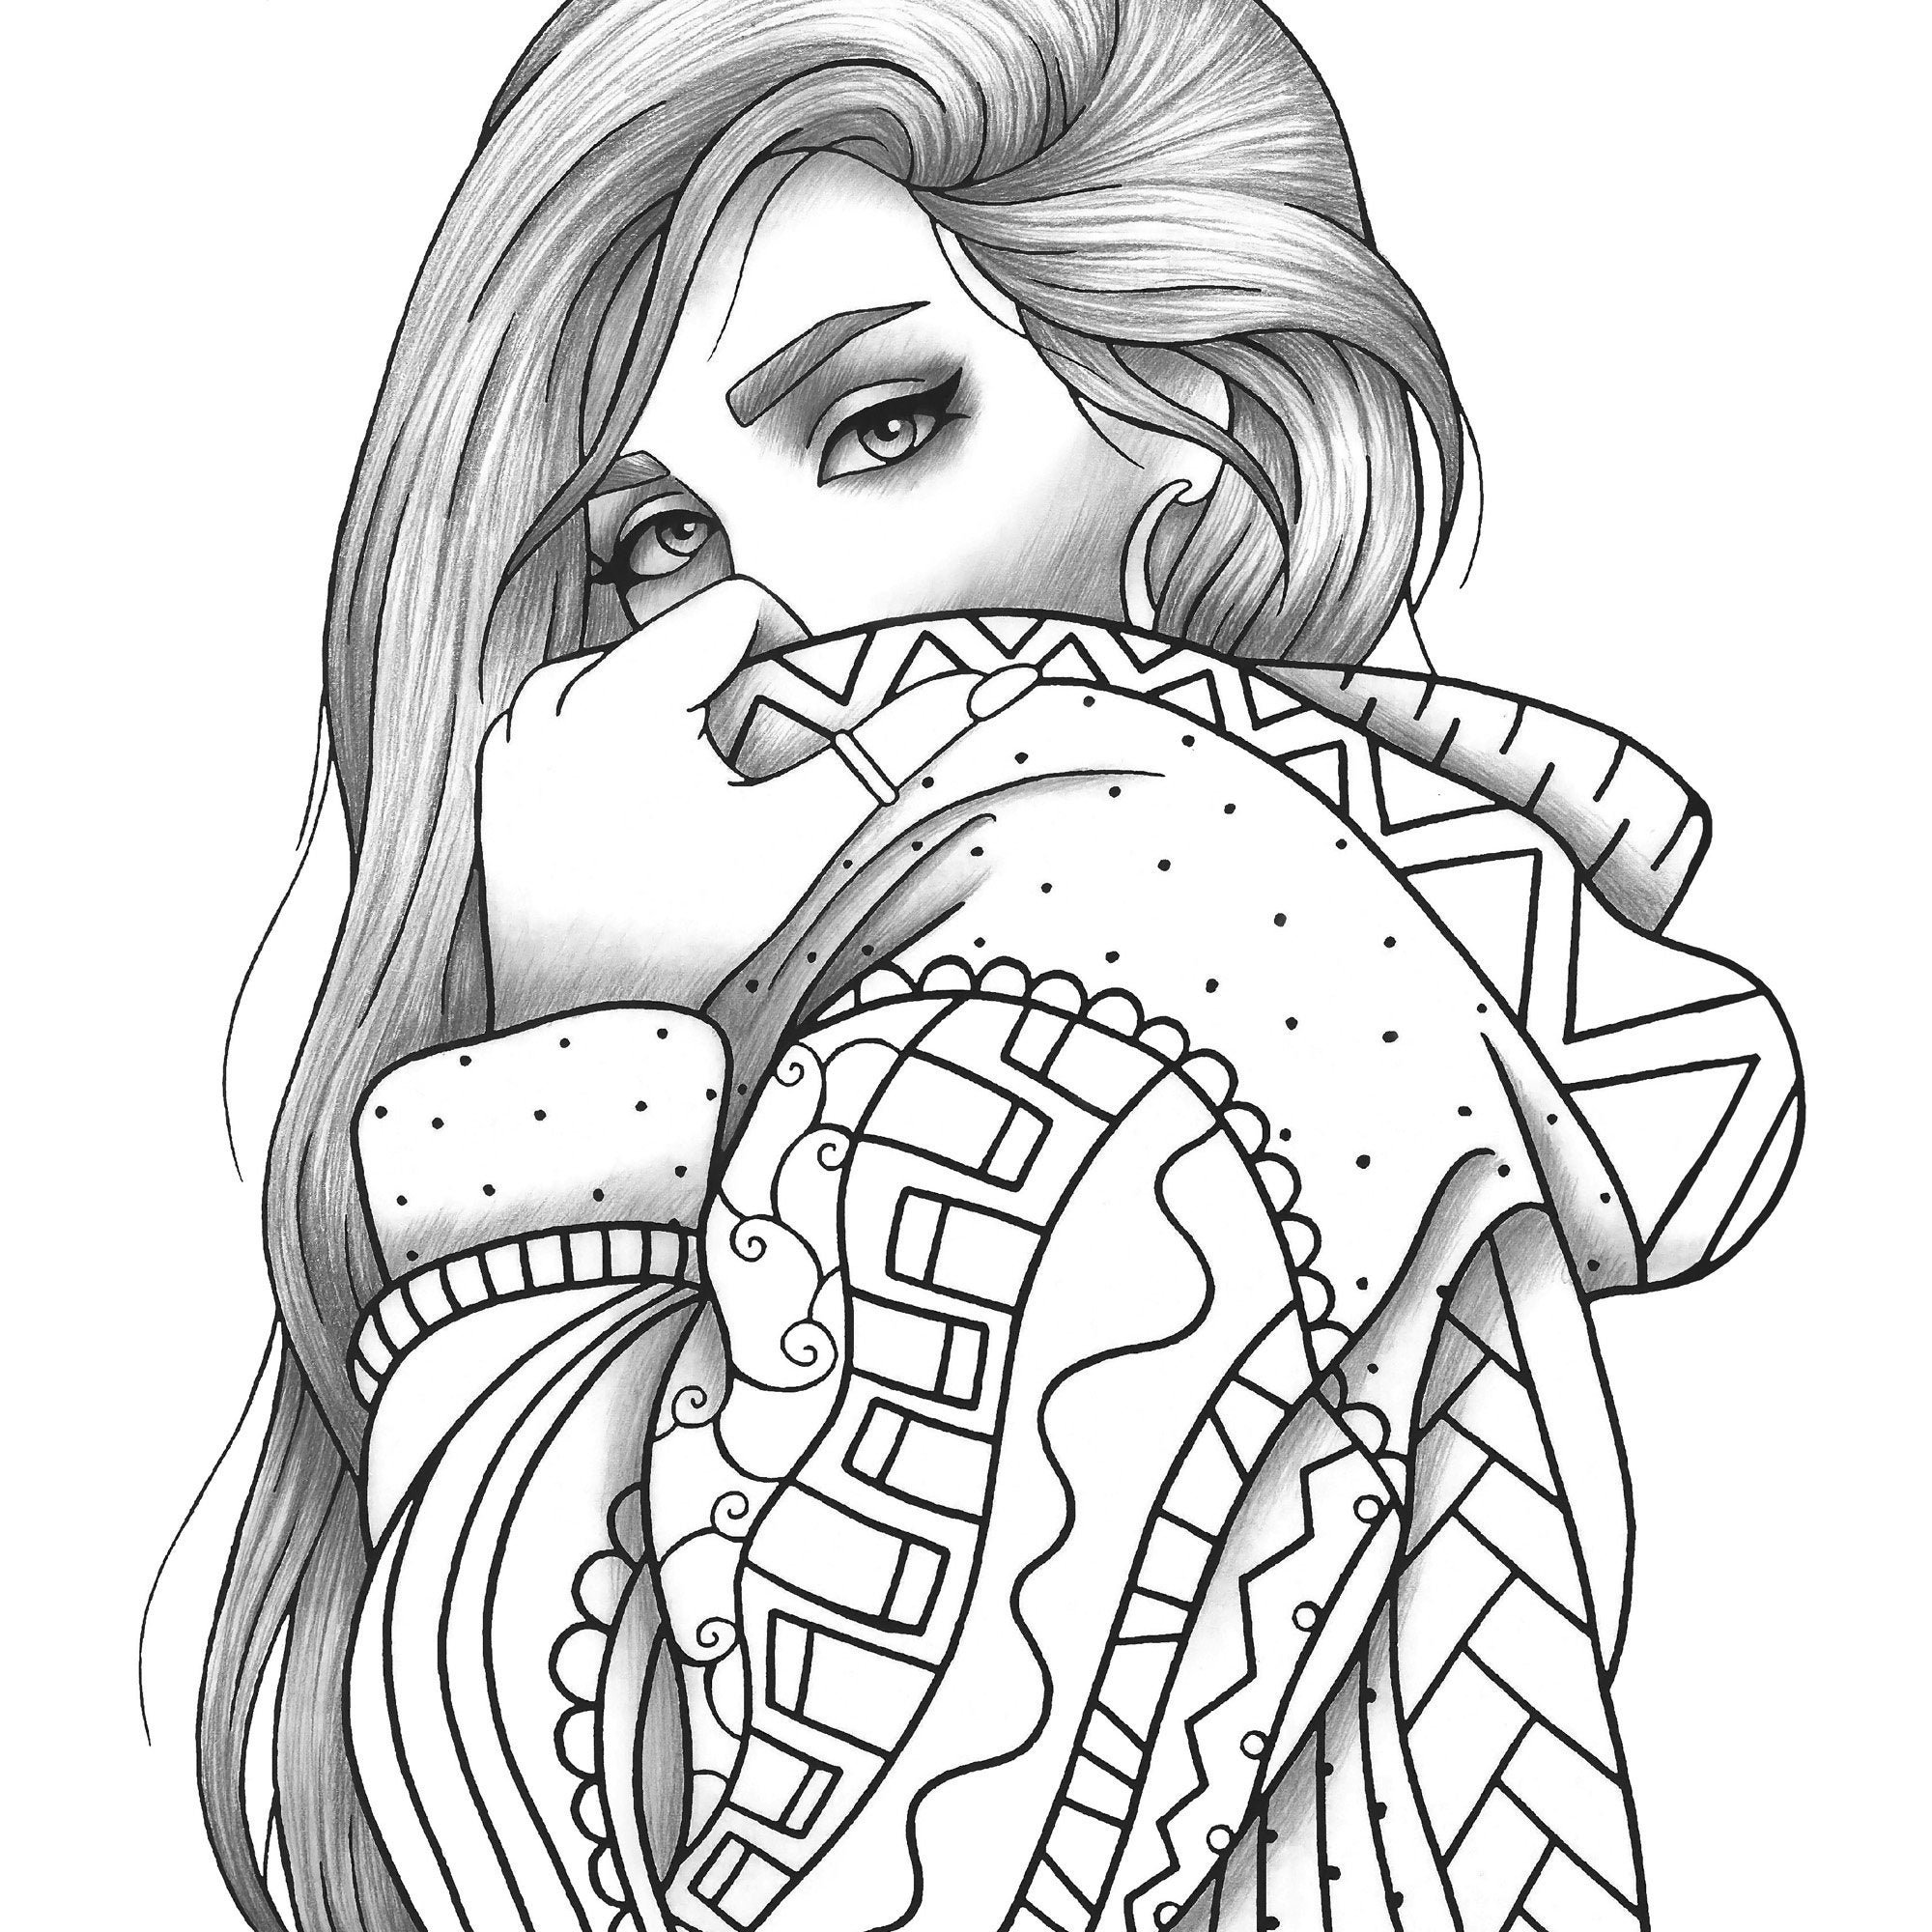 coloring pages of people adult coloring page girl portrait and clothes colouring pages of coloring people